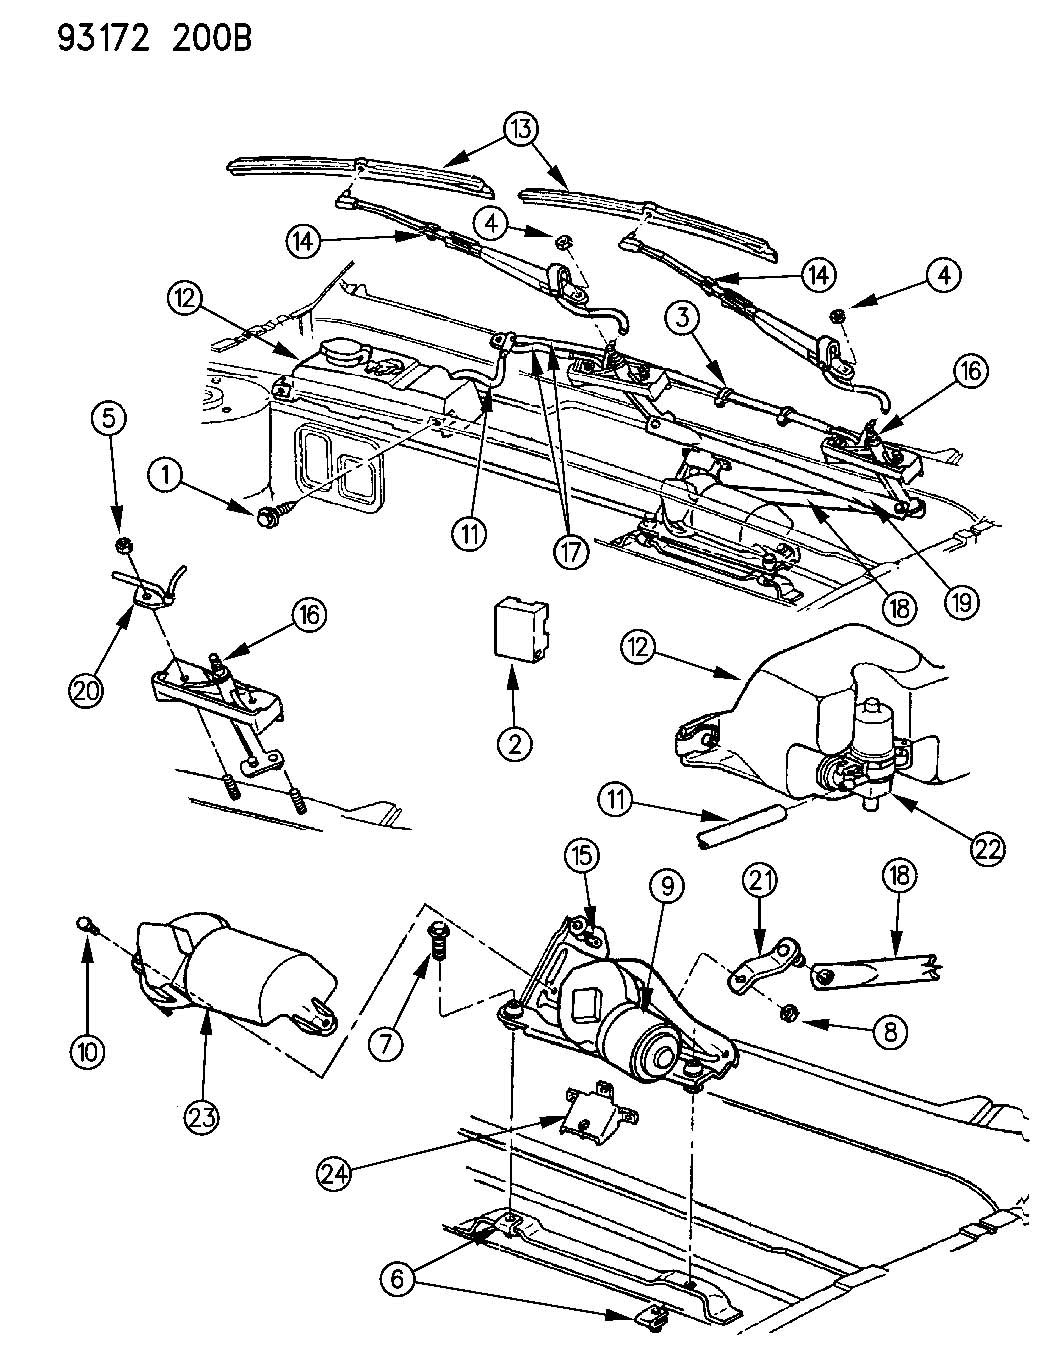 Service manual [1993 Plymouth Sundance Windshield Washer